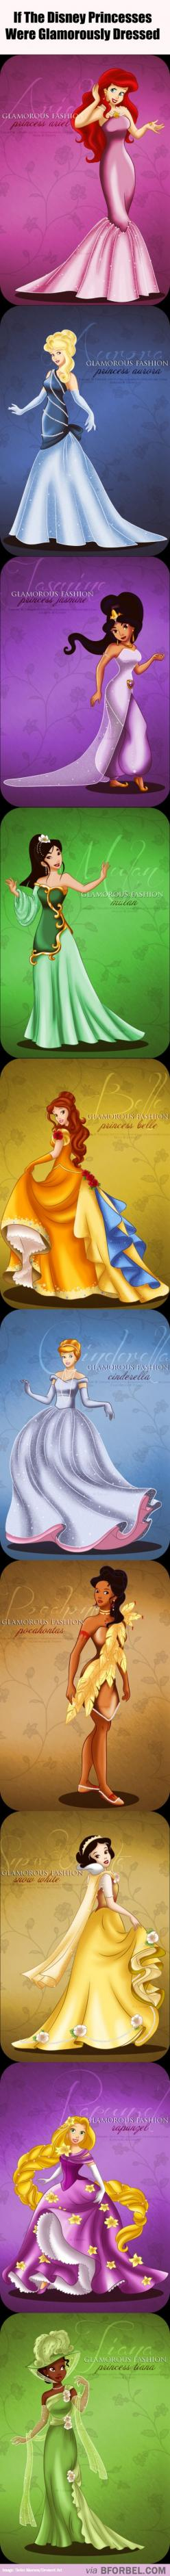 10 Glamorously Dressed Disney Princesses…: Dressed Disney, Dressed Princesses, Disney Princesses I, Mulan S Dress, 10 Glamorously, Glamorously Dressed, Belle, Princesses Disney, Cinderella